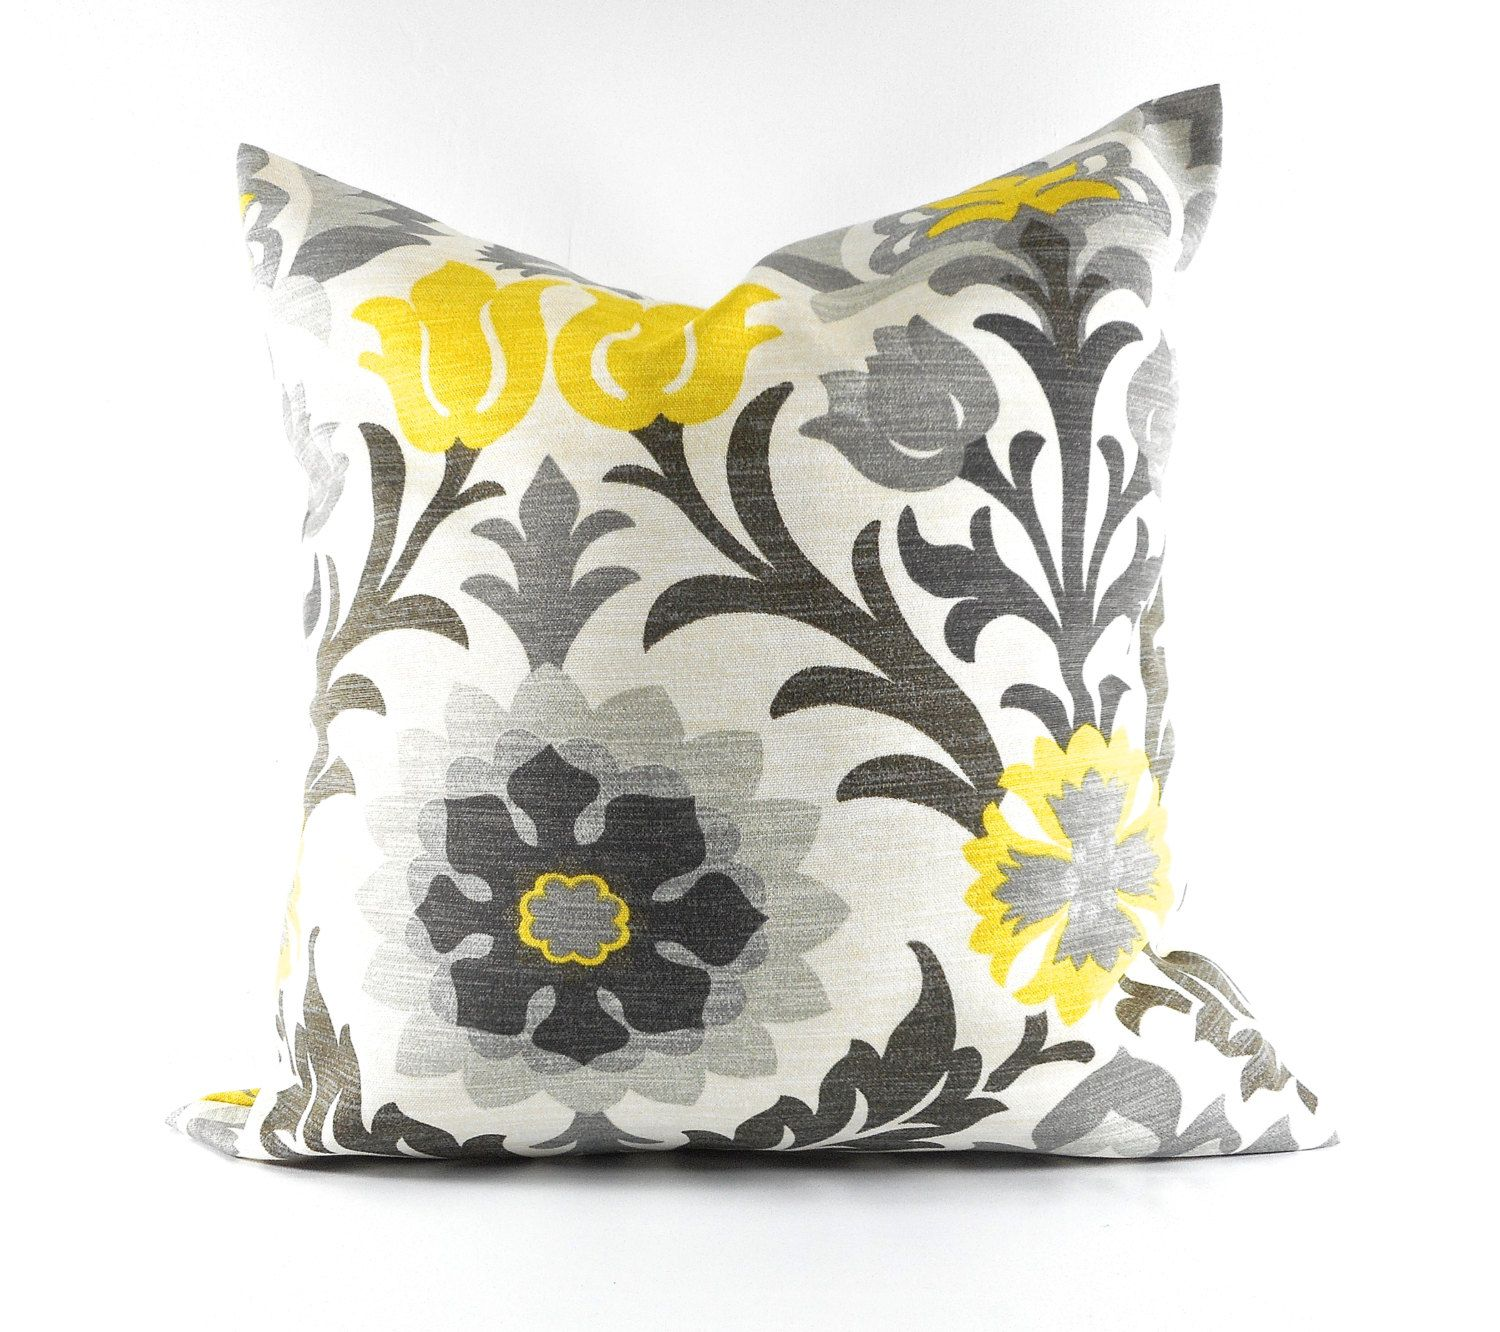 Sun and shade licorice outdoor pillow cover stain dirt fade